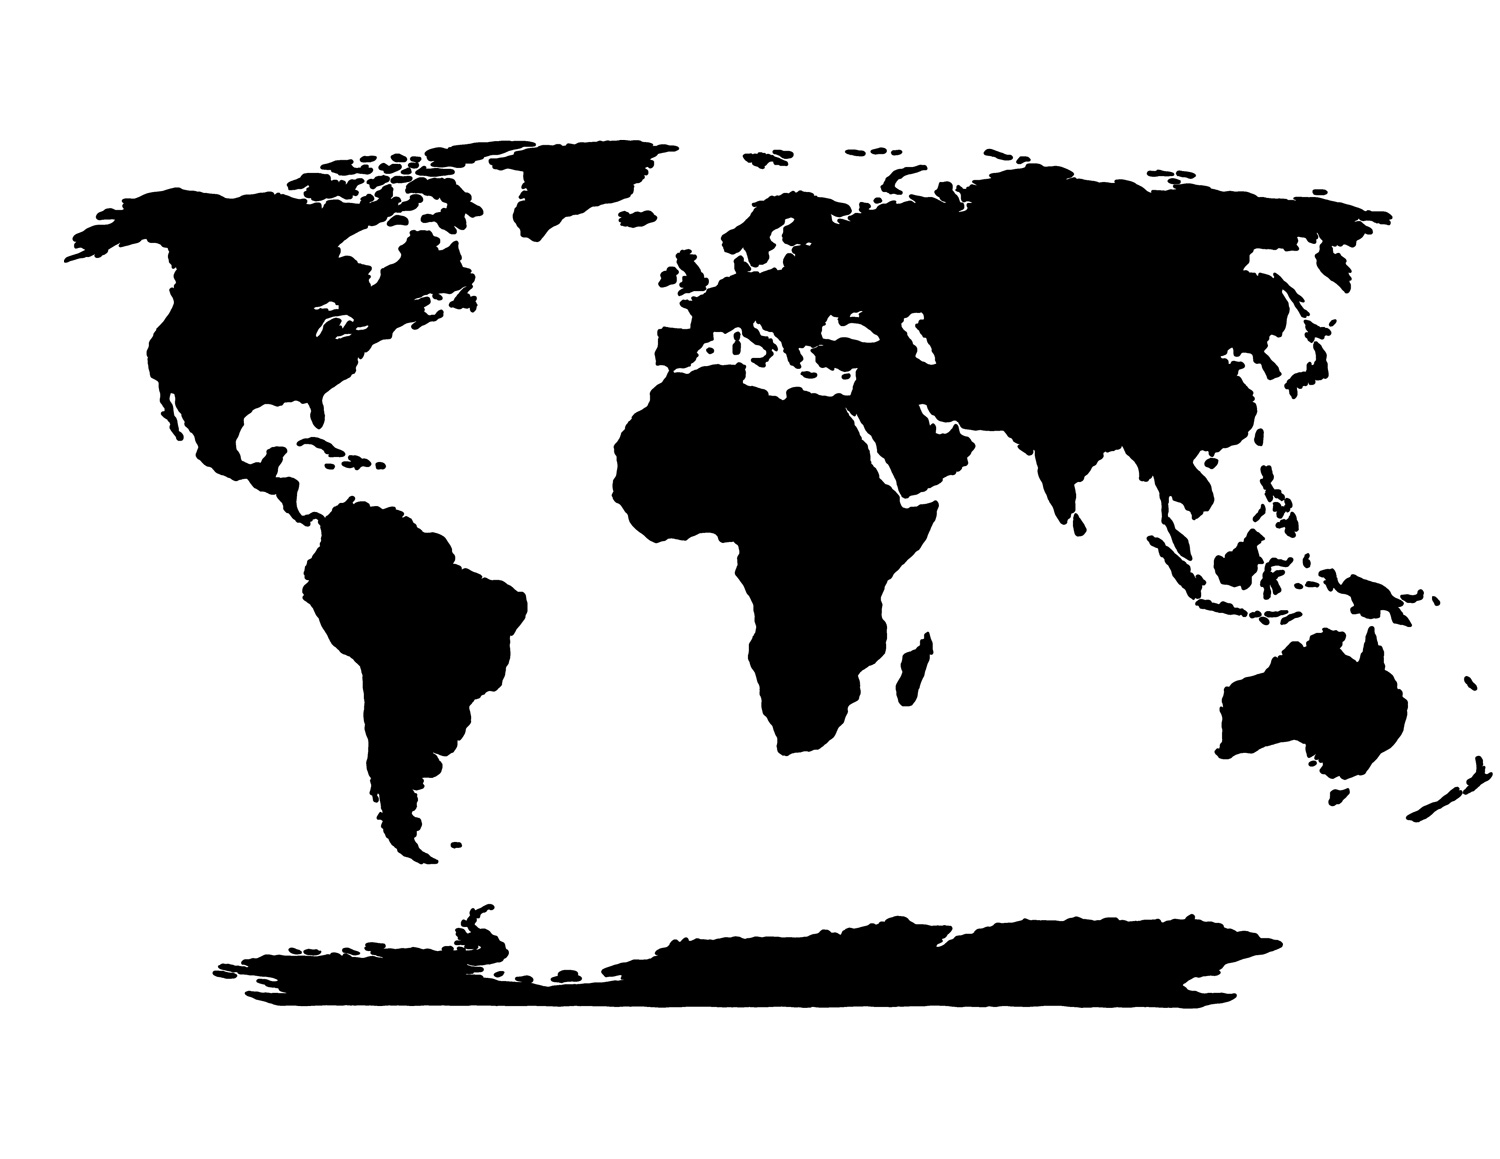 World Map Blank Template Map Get Free Image About World Maps – Blank World Map Worksheet